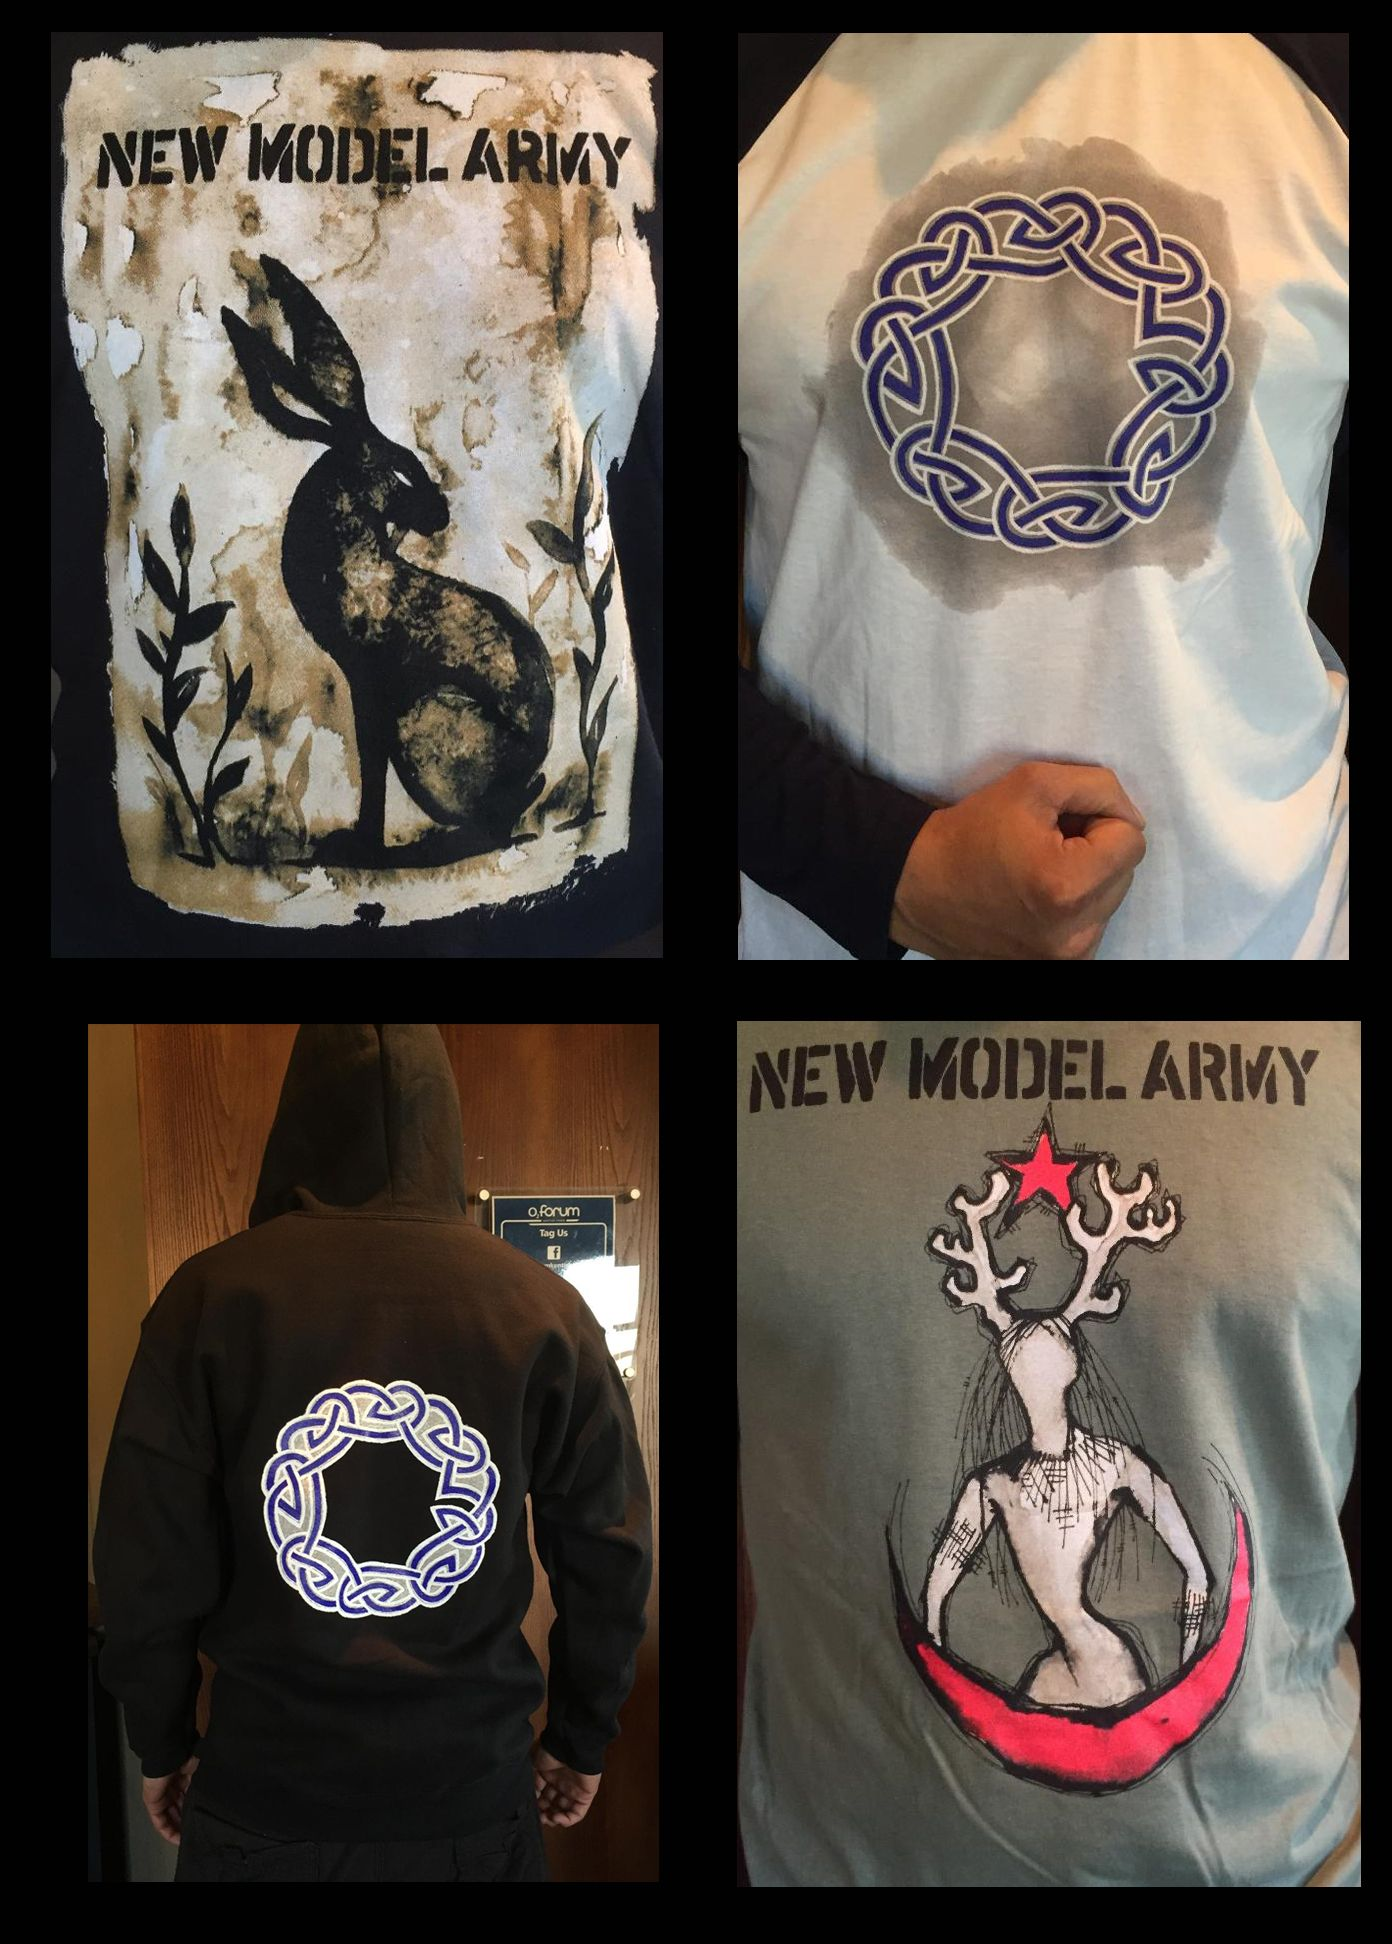 New Model Army Home Spa Panel Wiring For Dummies Page 4 Brew Forums Those That Missed The Opportunity To Purchase Merch On December Dates Winter Gatherings Range Of Tee Shirts Hoodie And Beanie Hat Are Now